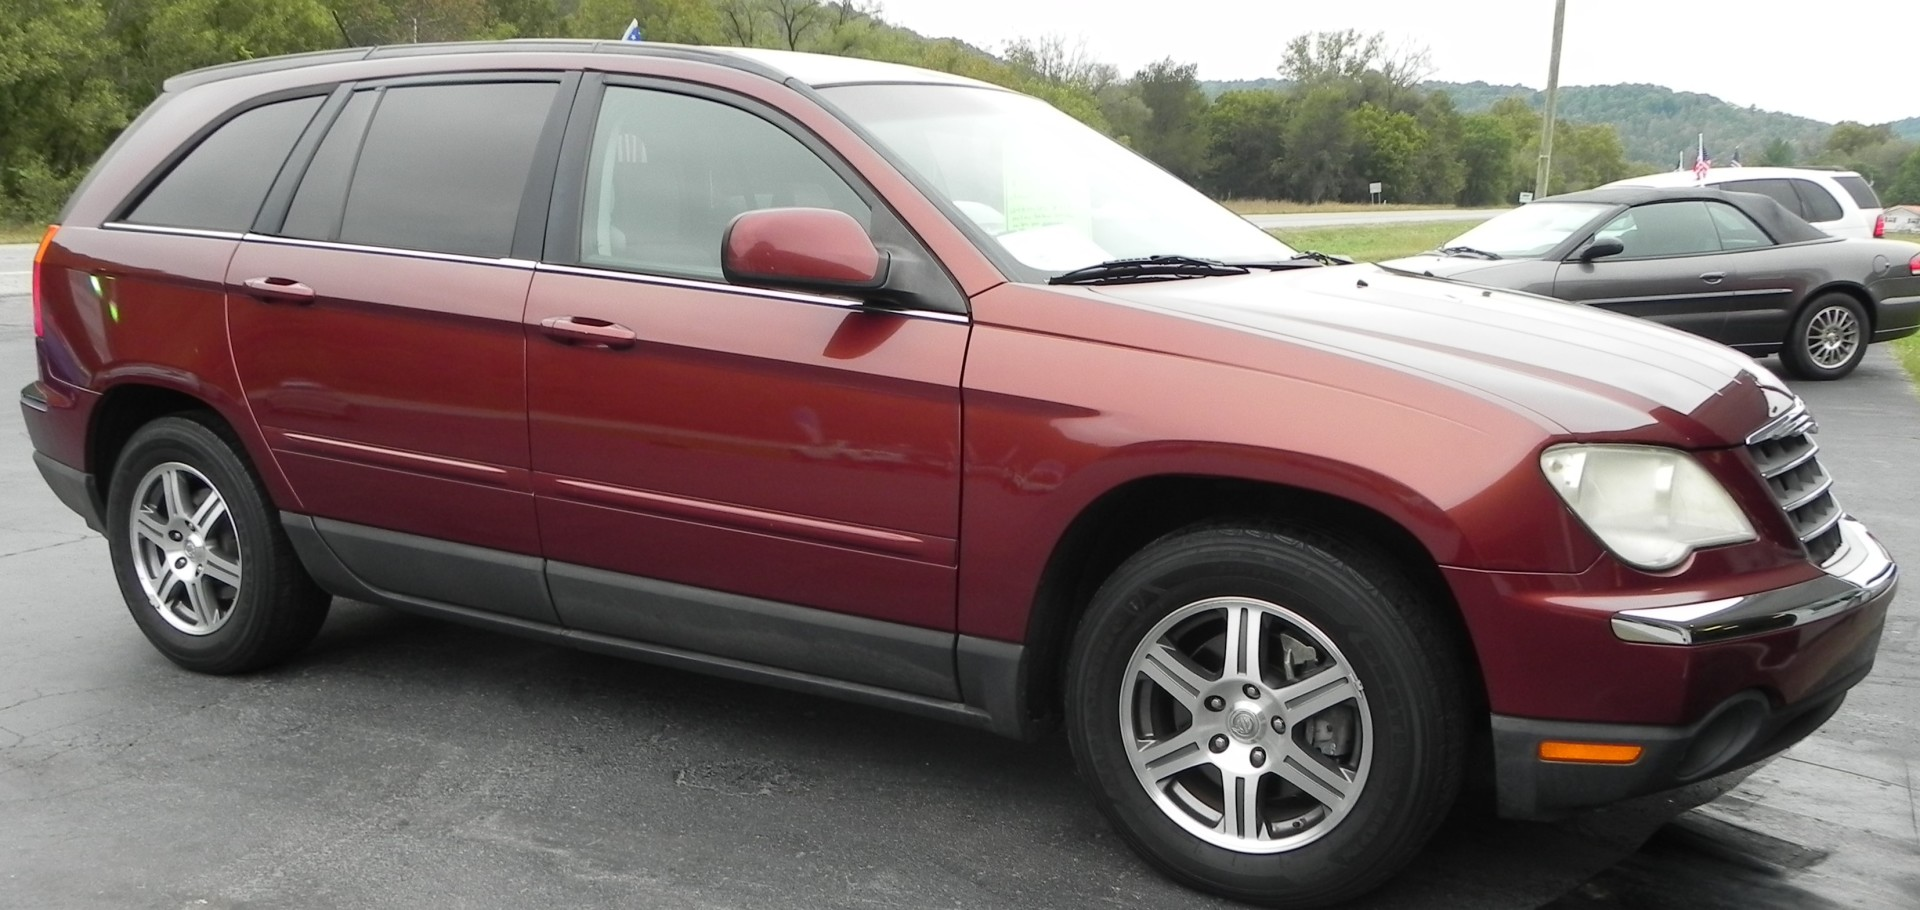 2007 Chrysler Pacifica (3rd Row Seats)